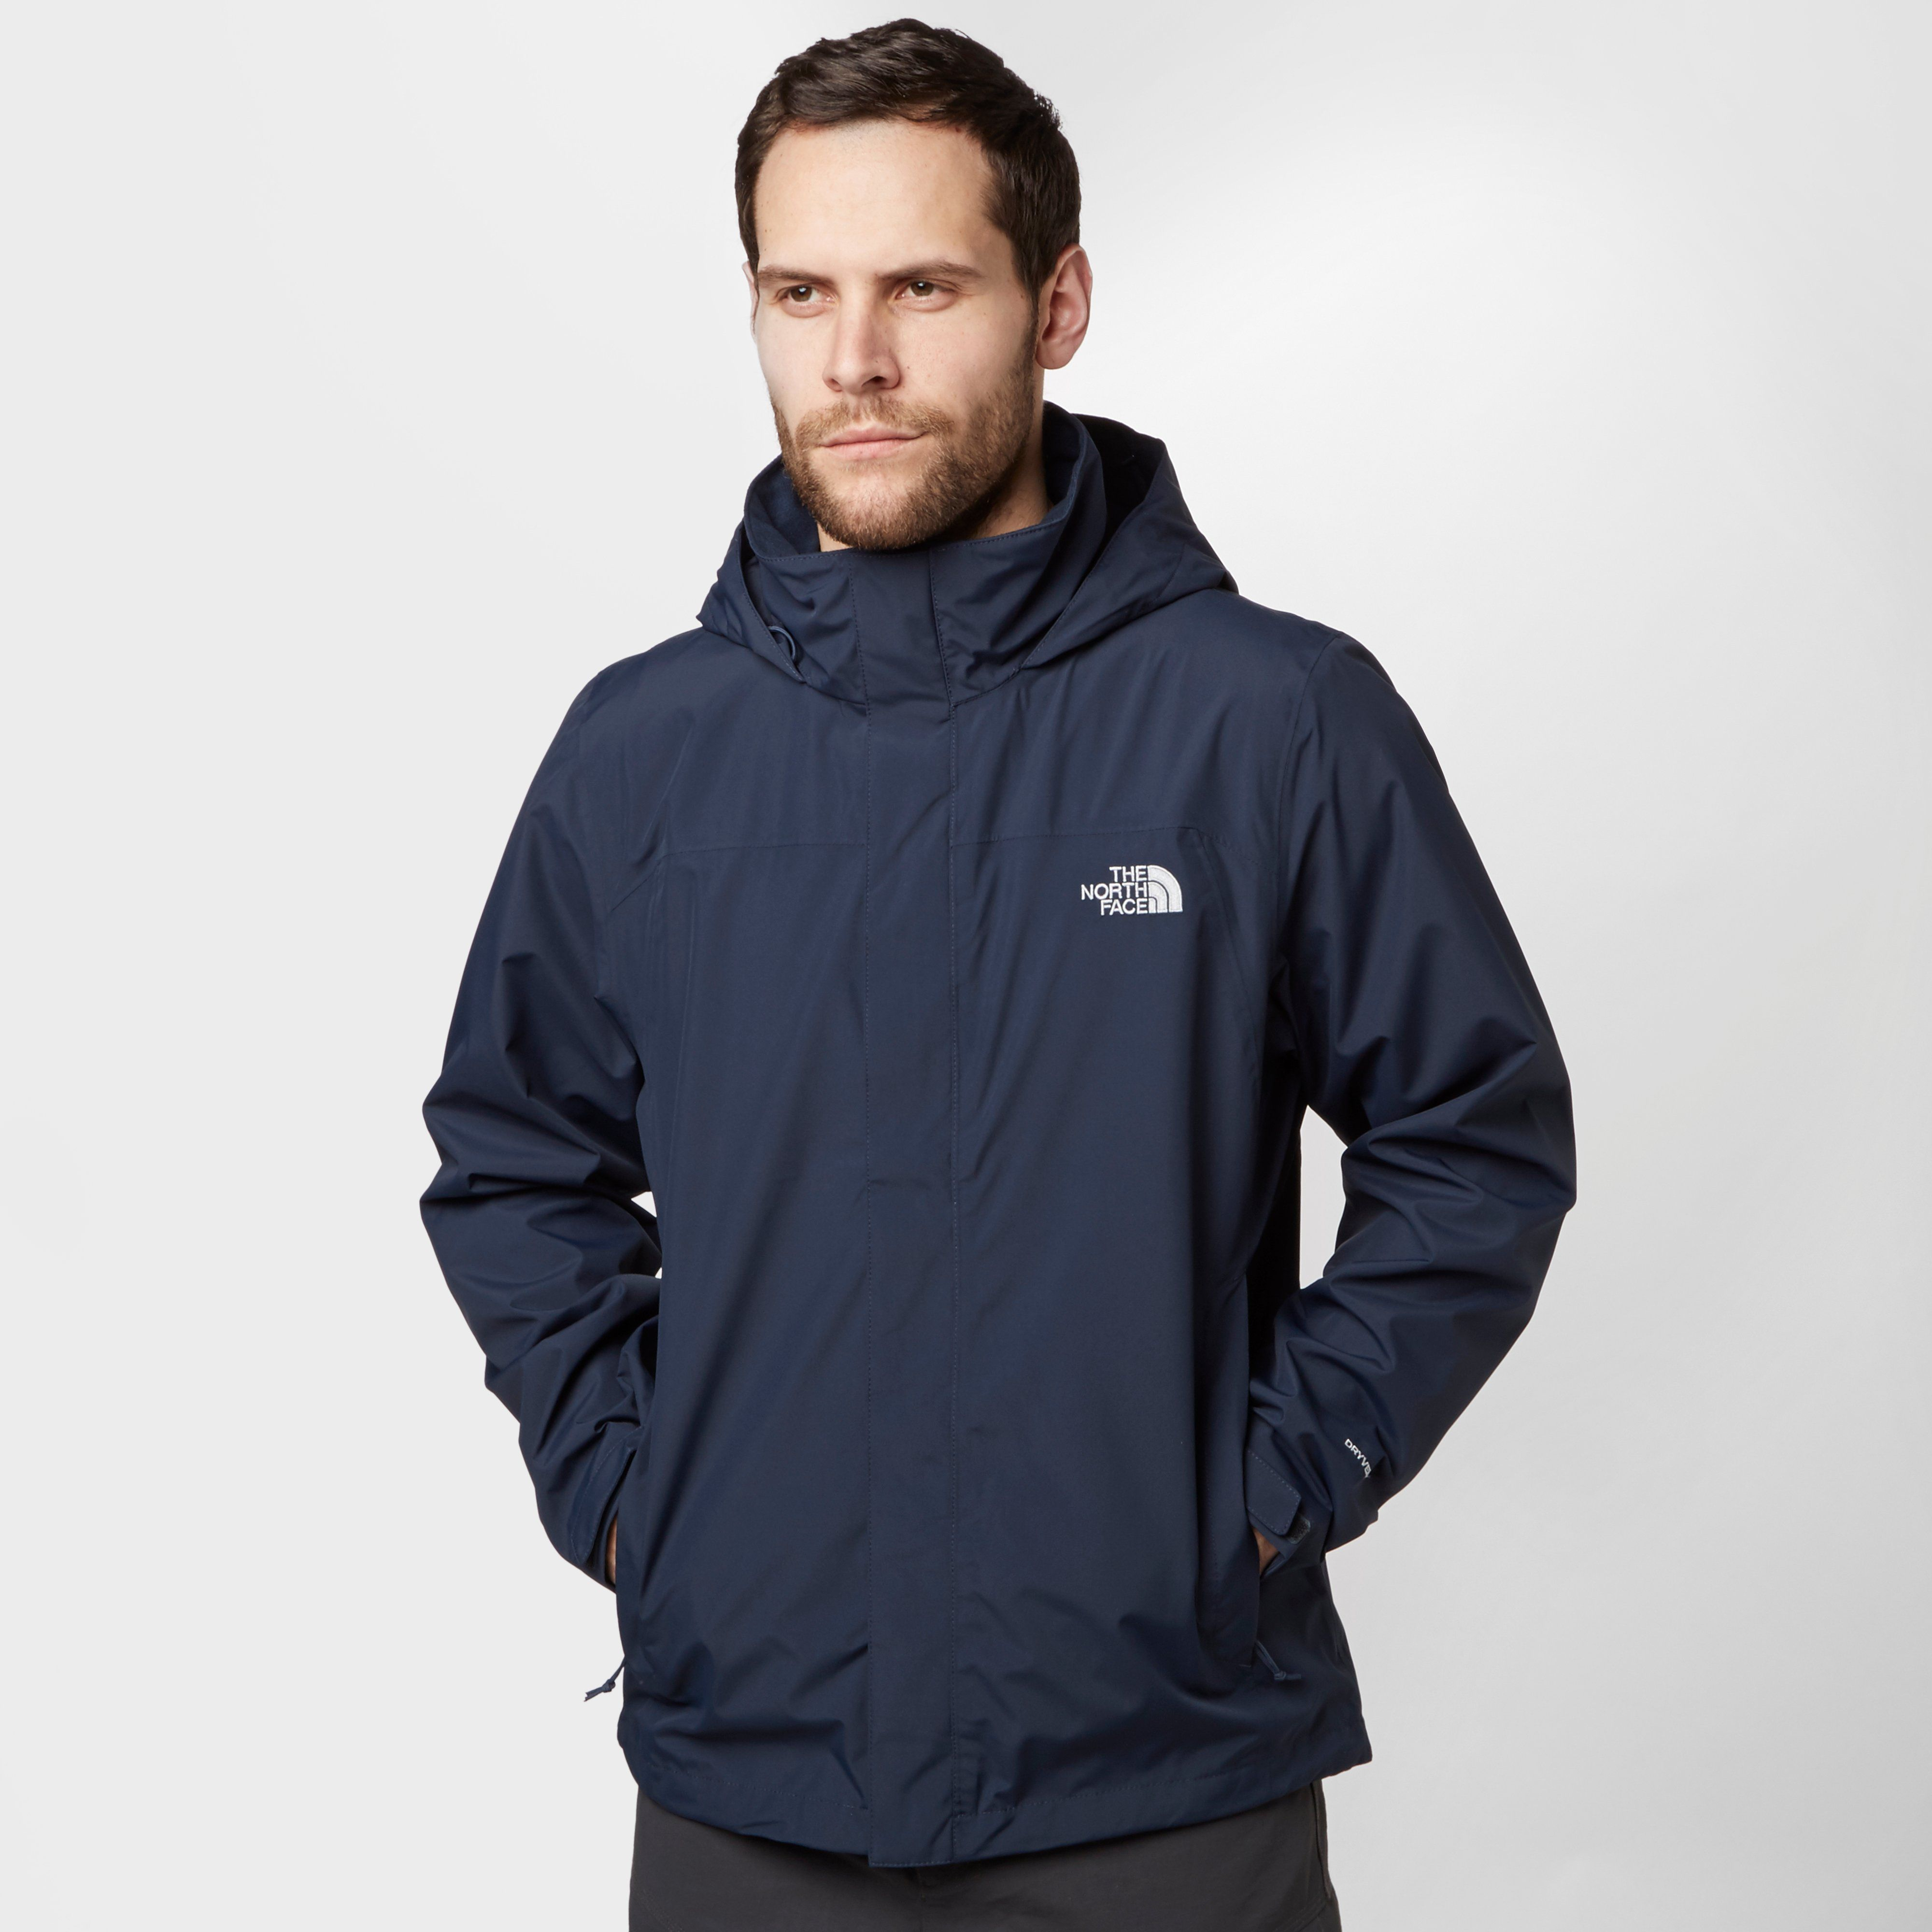 THE NORTH FACE Sangro DryVent® Waterproof Jacket